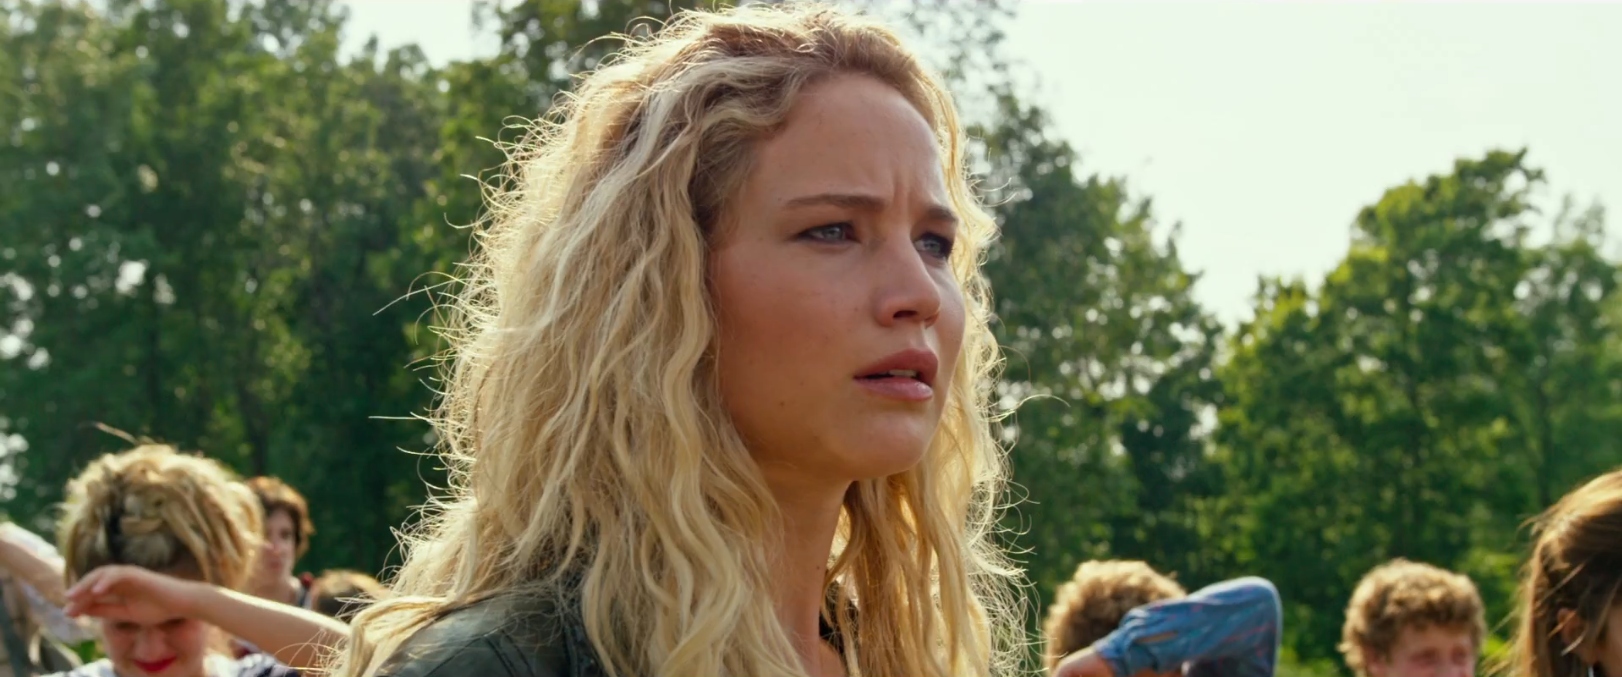 X-Men: Apocalypse: Jennifer Lawrence nel primo trailer del film